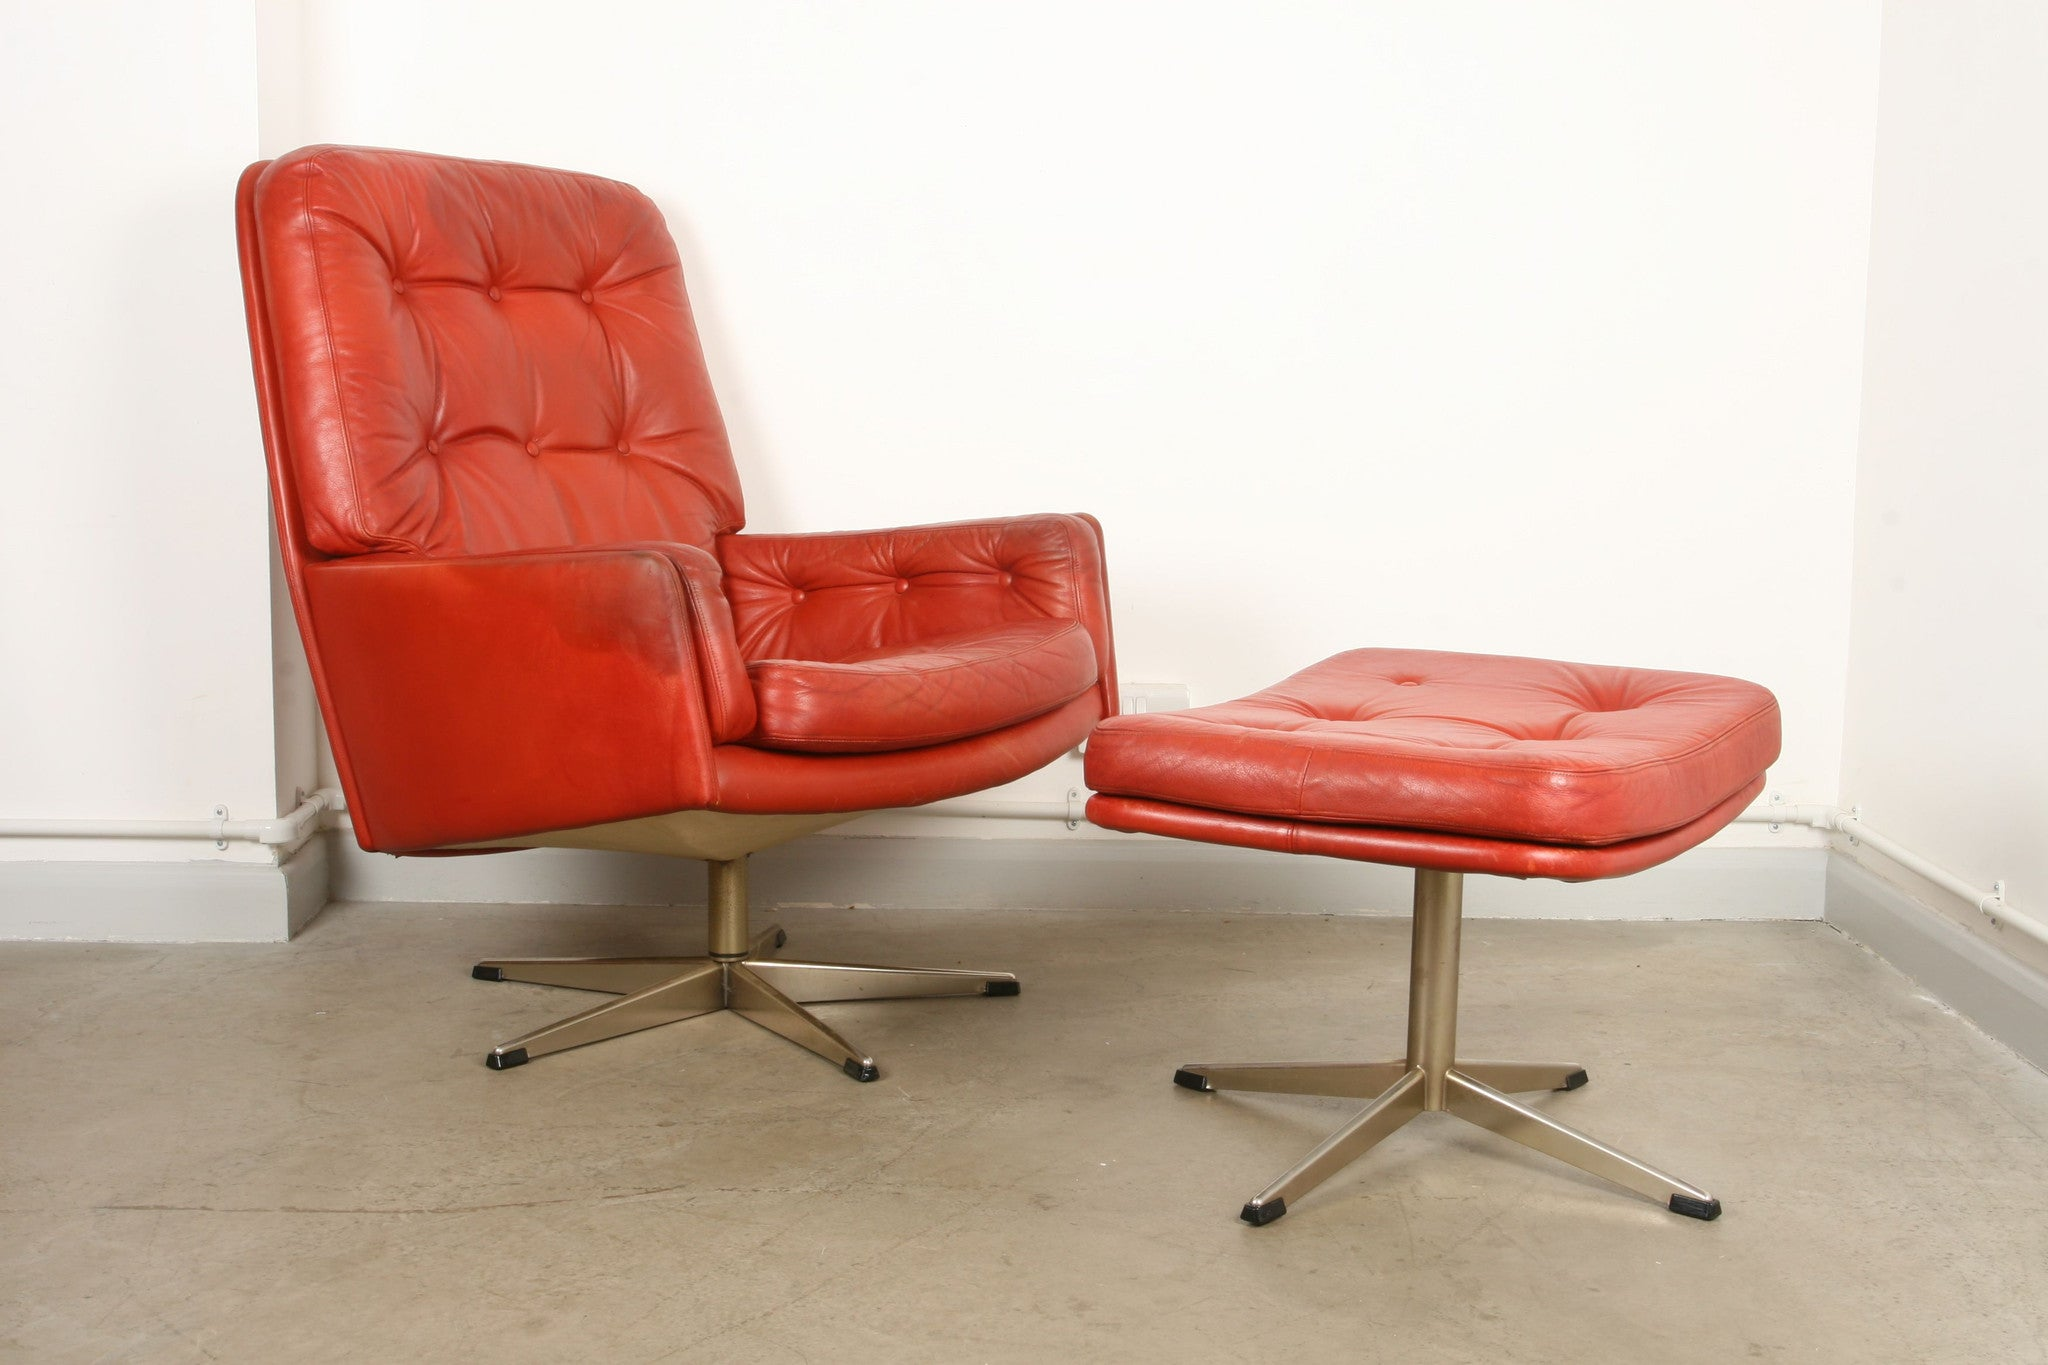 High back leather lounger with matching foot stool